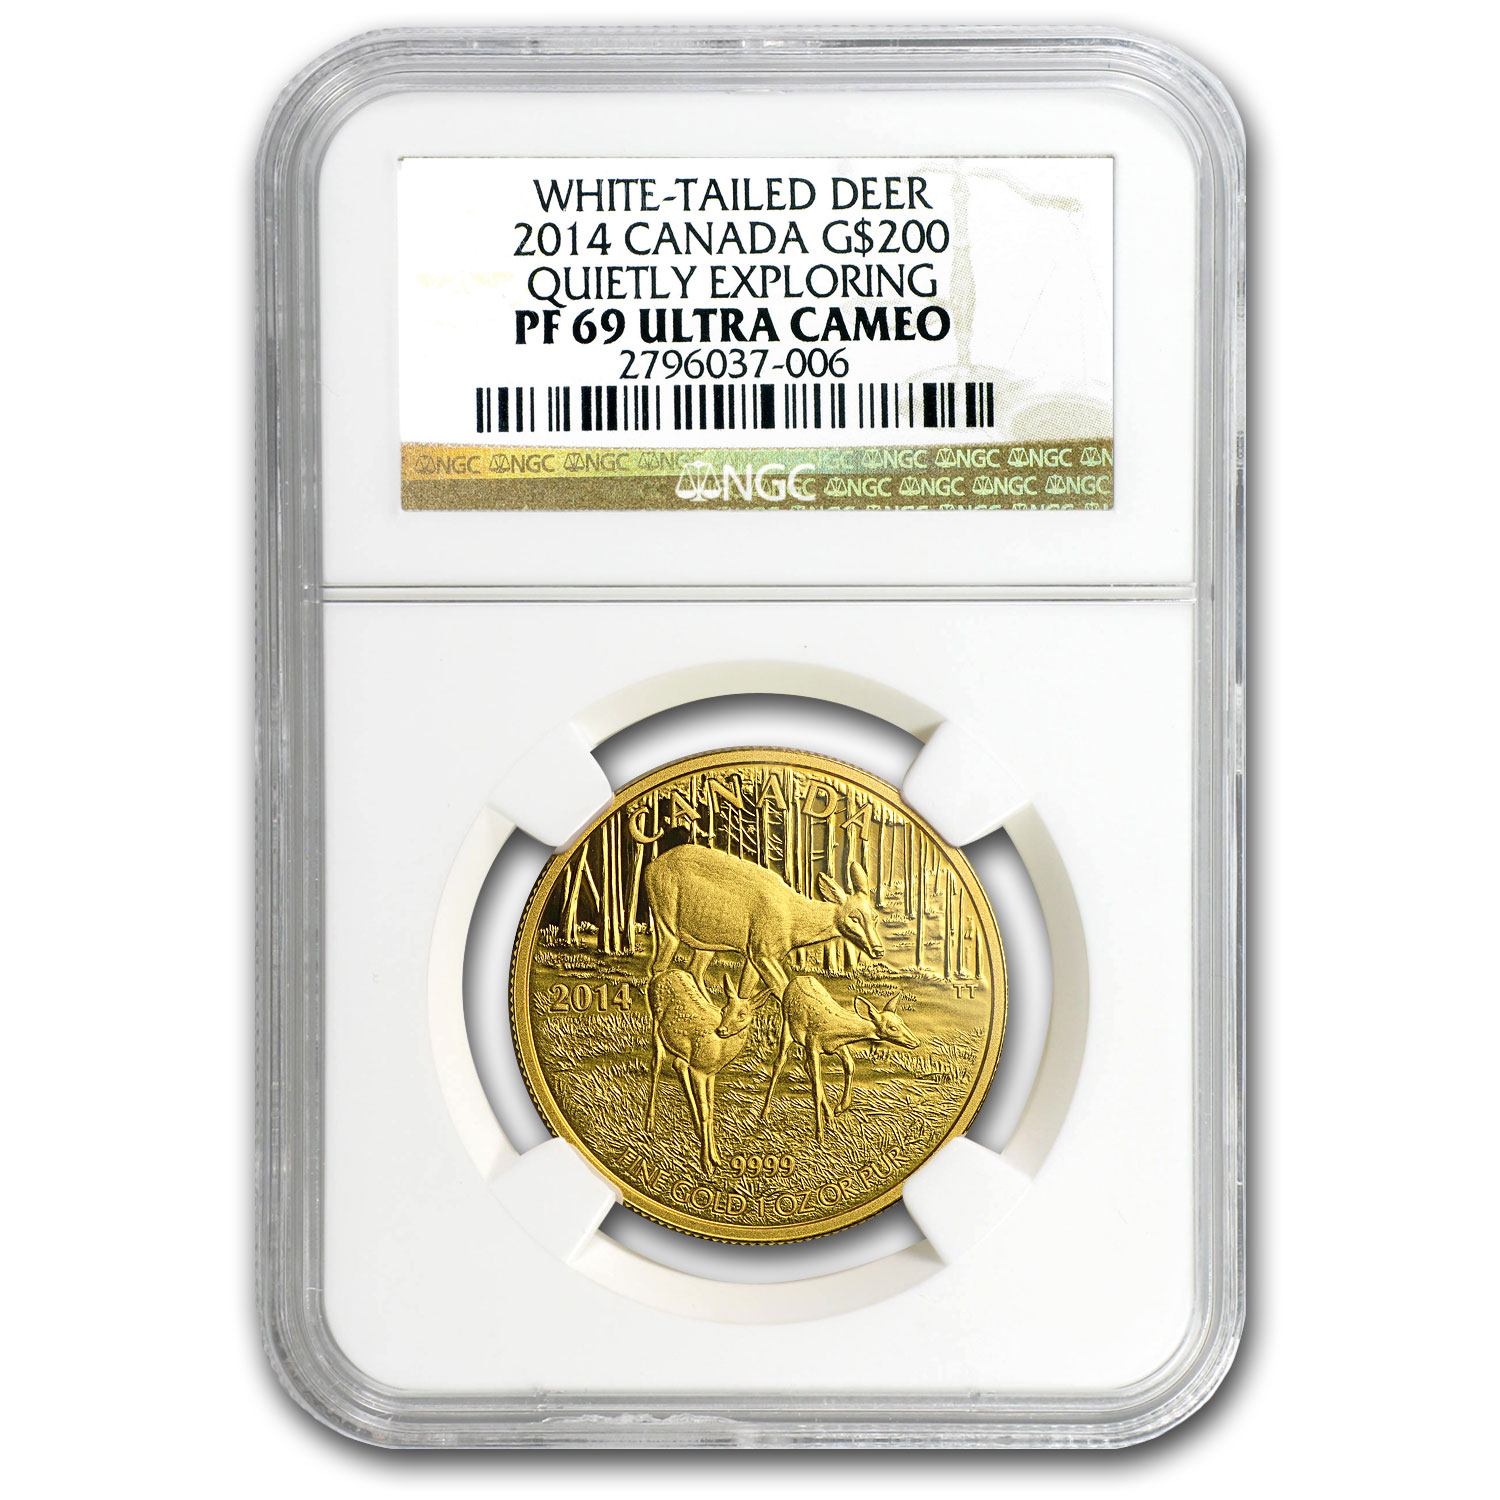 2014 Canada 1 oz Proof Gold $200 White-Tailed Deer PF-69 NGC